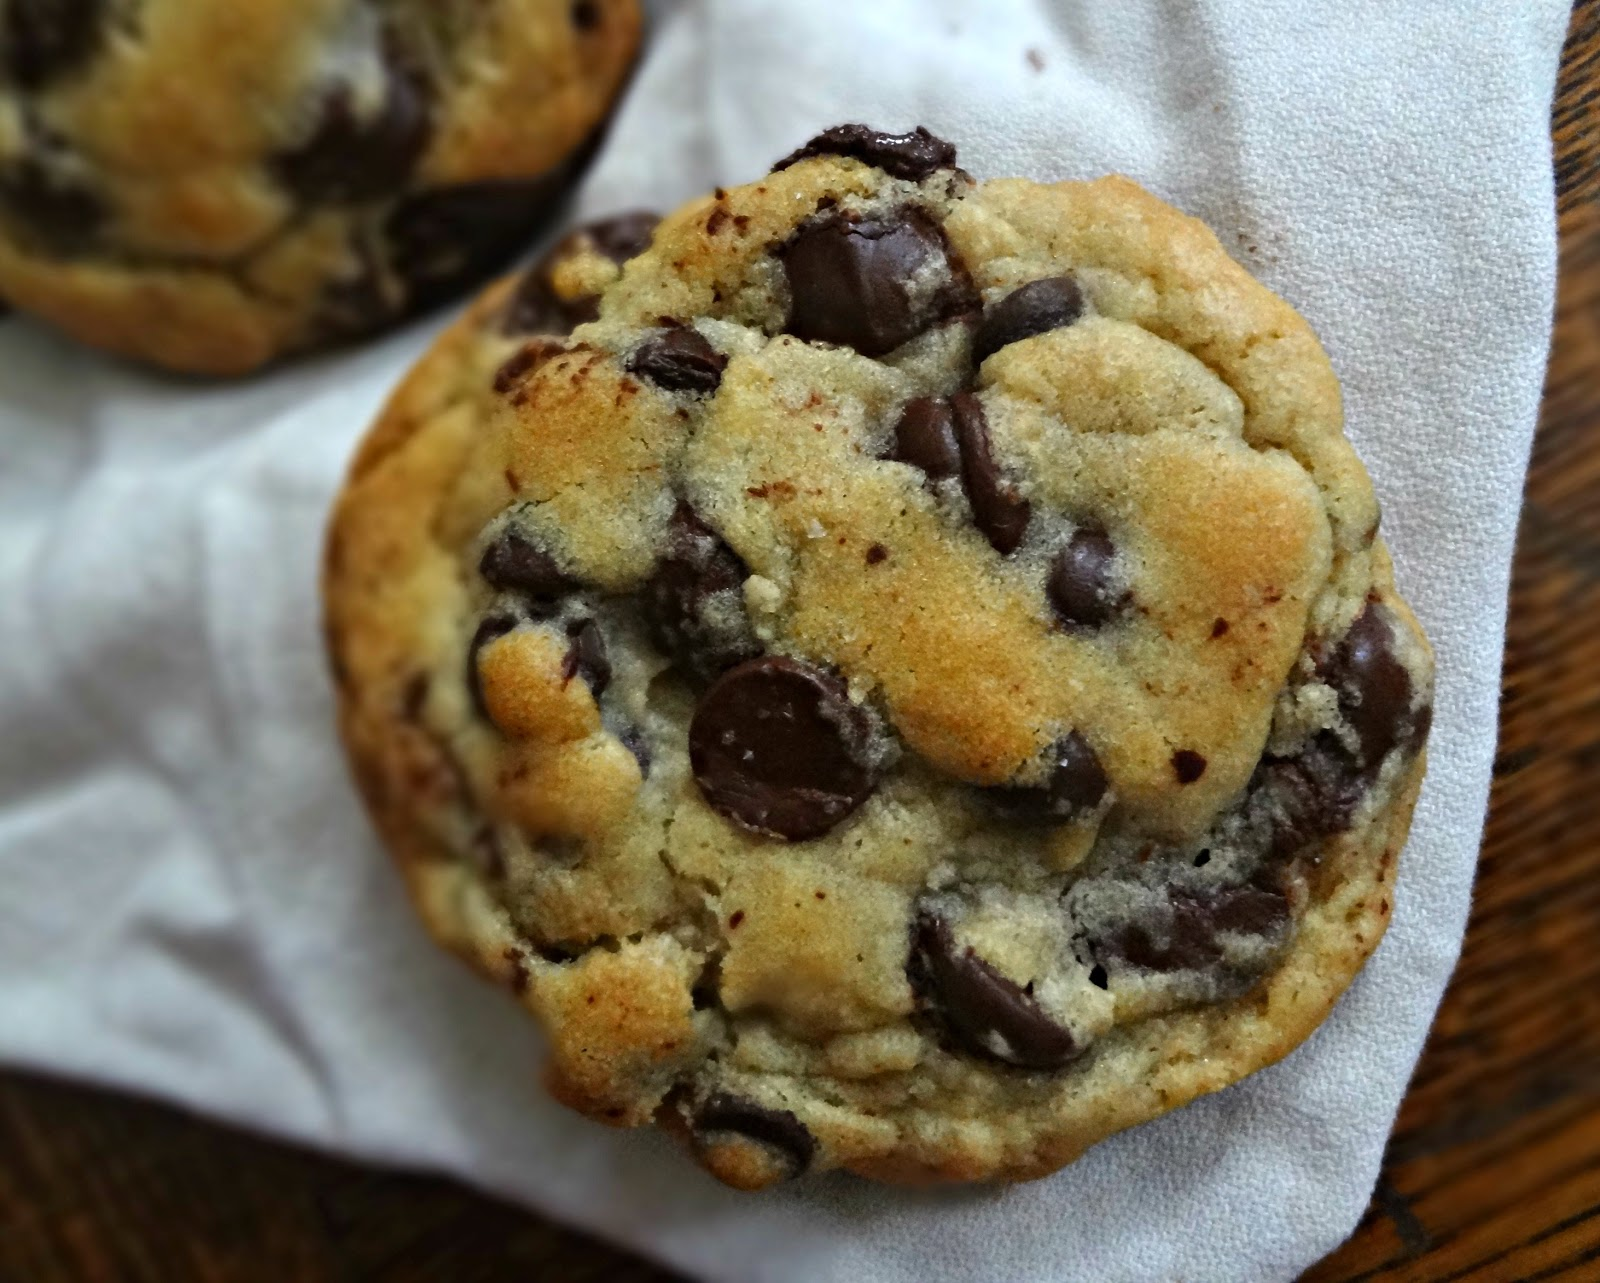 The cooking actress the new york times best chocolate chip cookie the new york times best chocolate chip cookie recipe forumfinder Choice Image